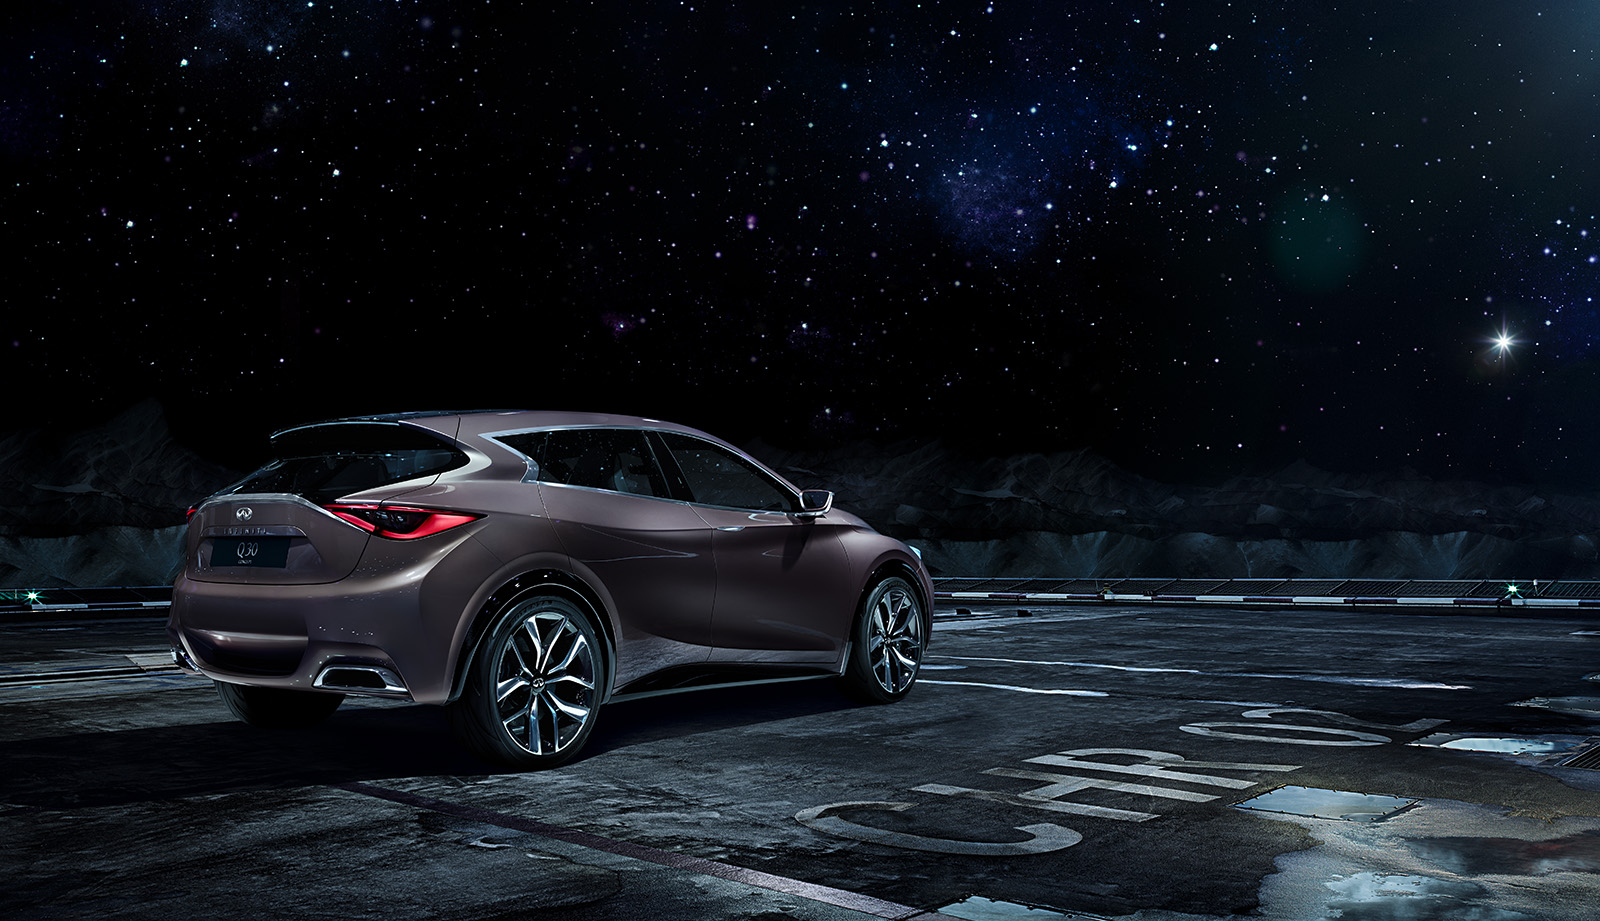 Infiniti Q30 - In outer space